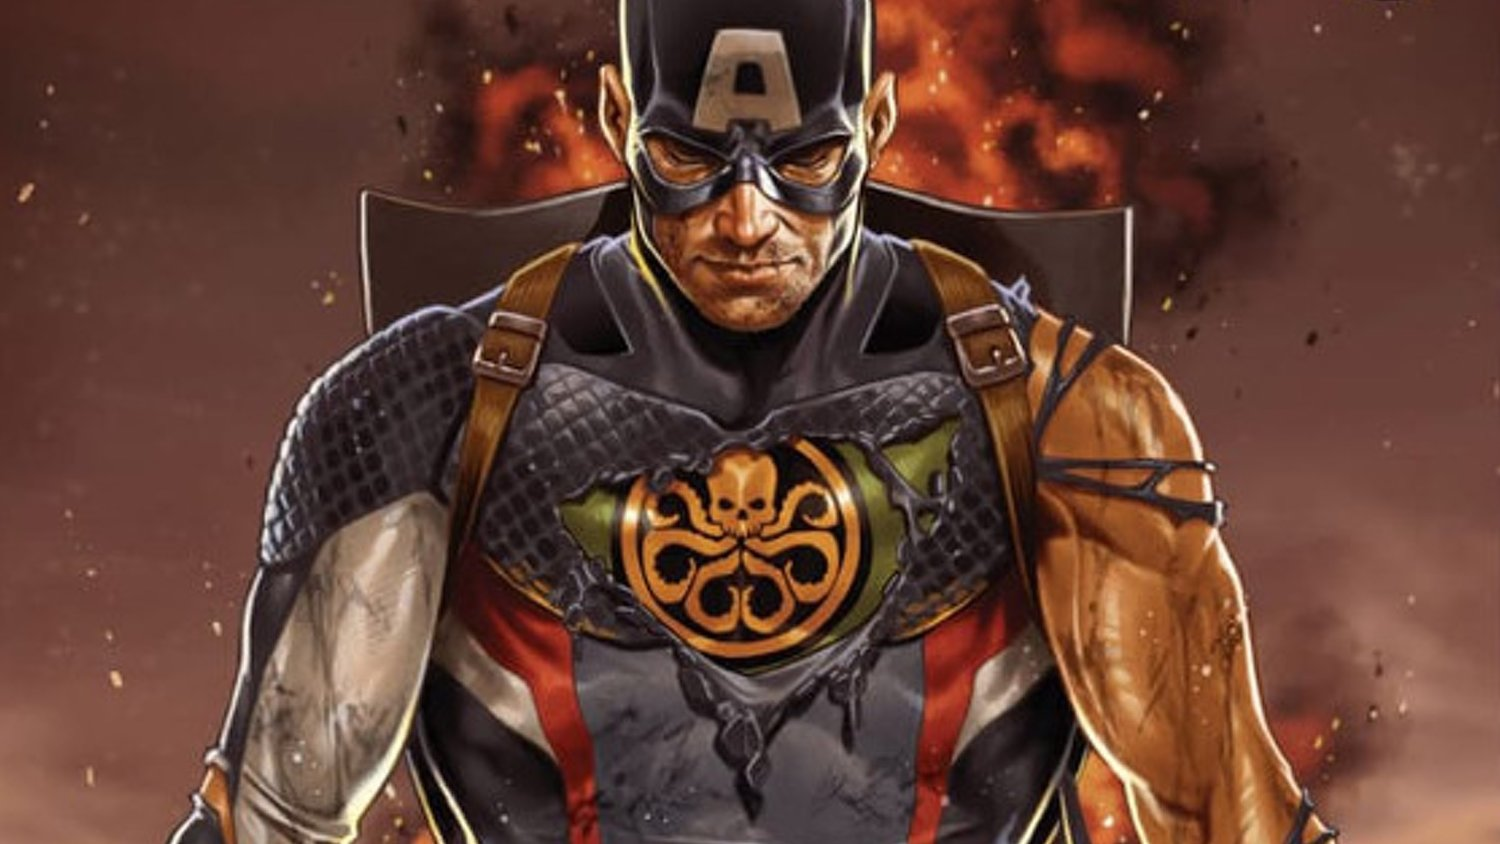 Captain America's Hydra Suit Teased on the Cover of Marvel Comics' SECRET EMPIRE #0